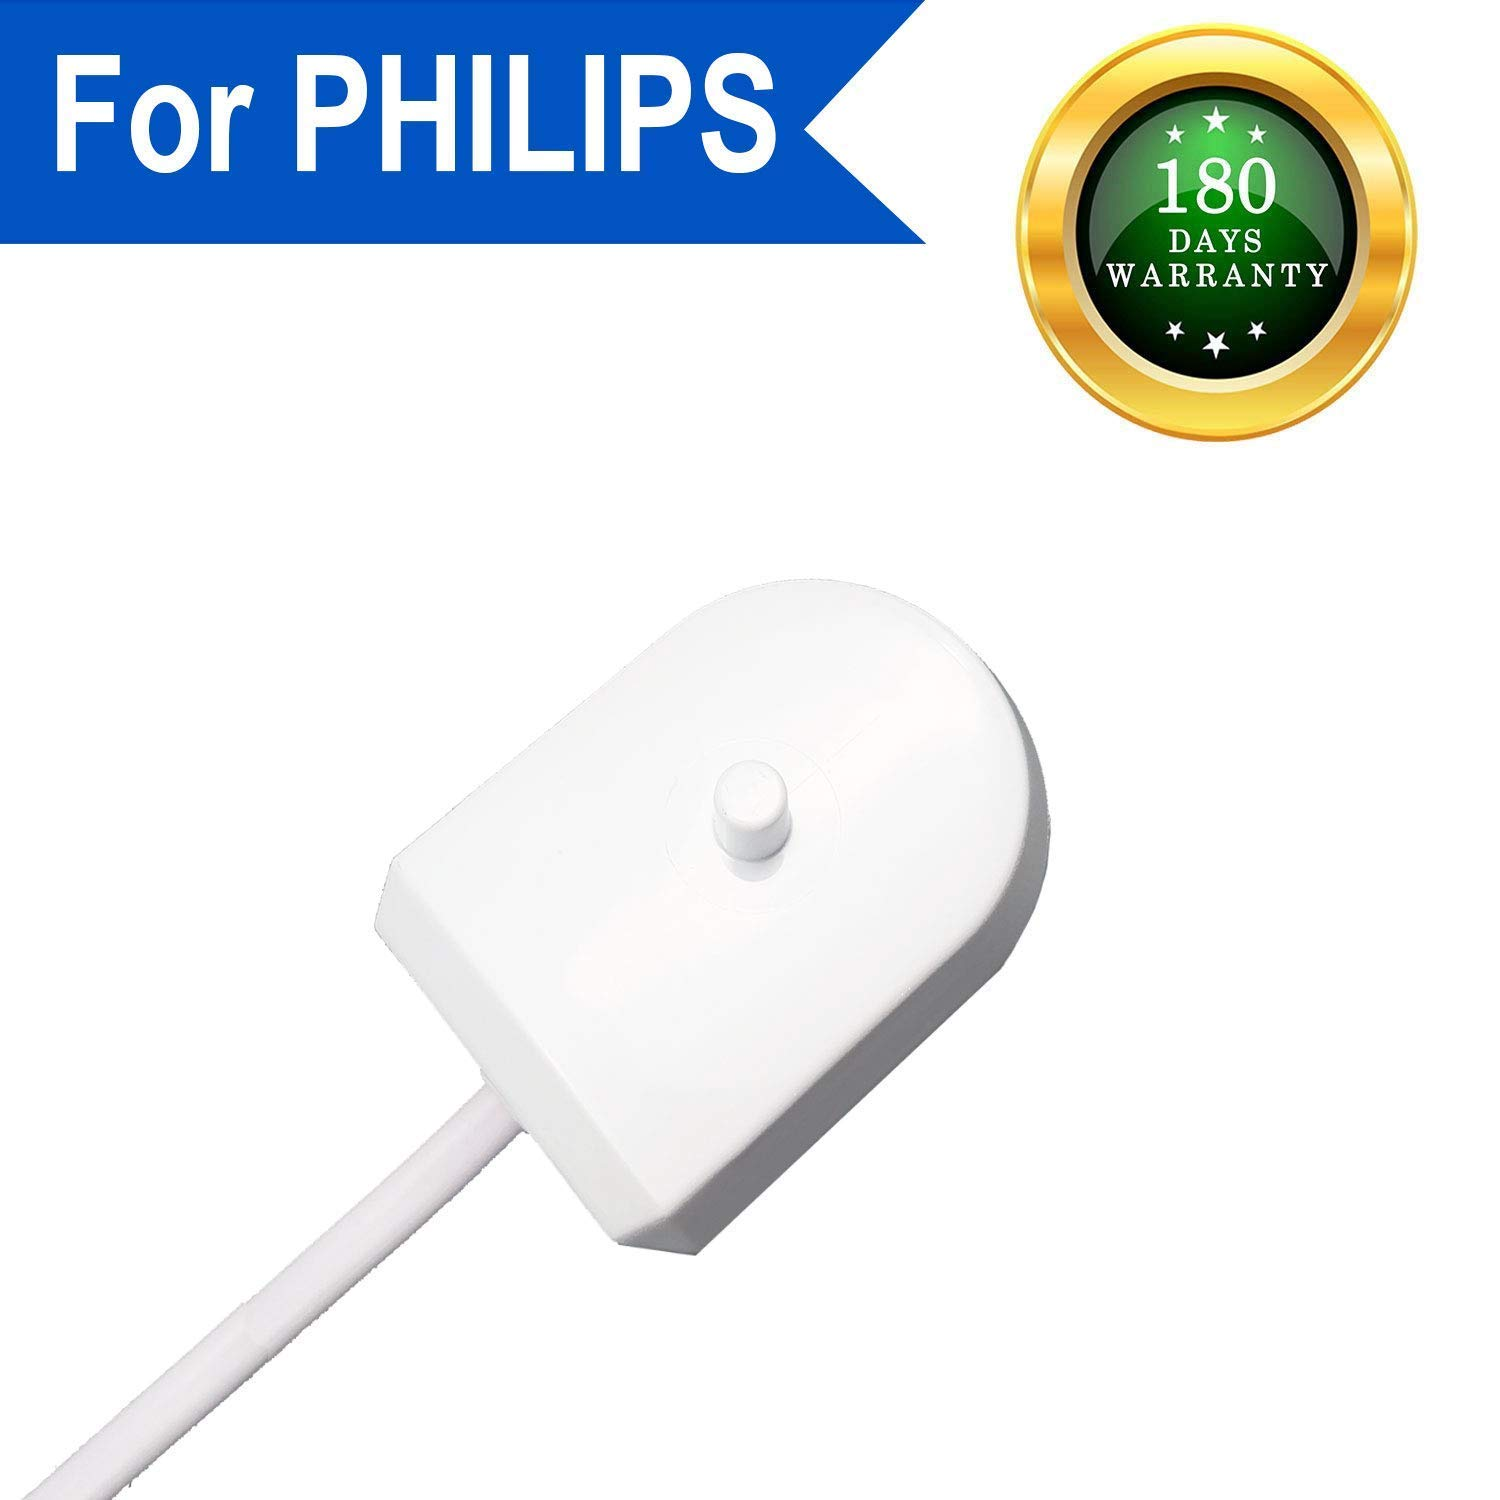 for Philips Toothbrush Sonicare Charger HX6100 Travel Charger Base Power Cord for Travel